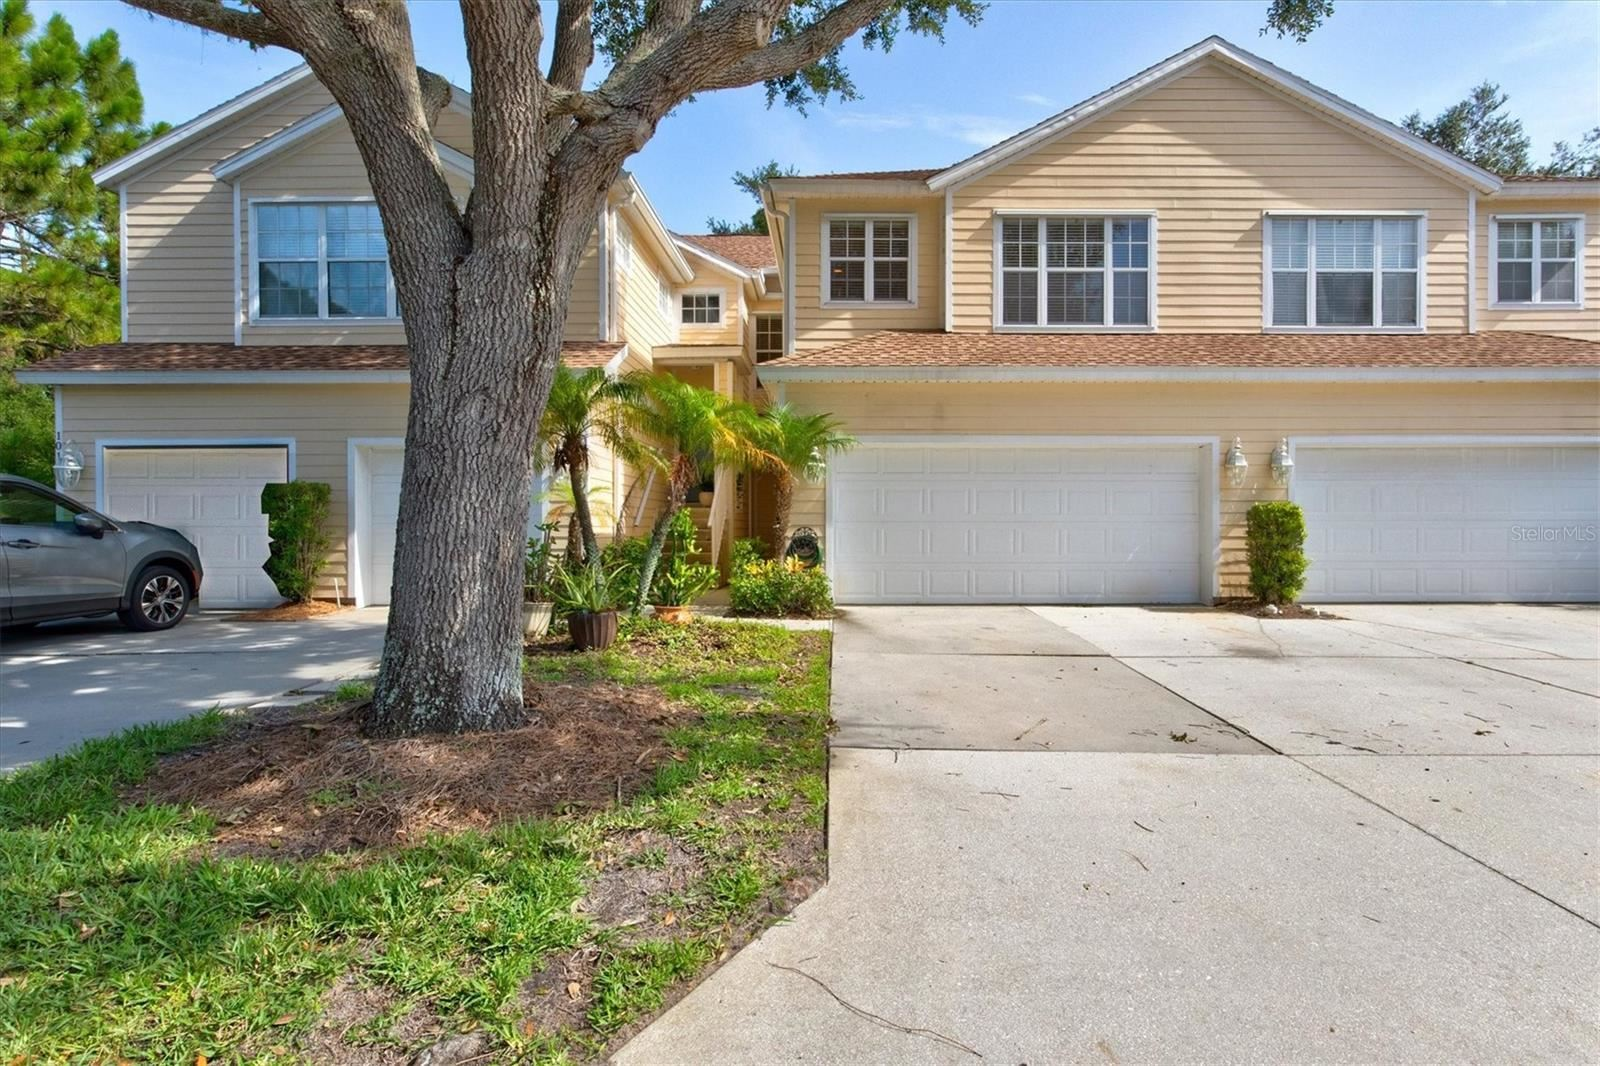 Photo of 6418 ROSEFINCH COURT #102, LAKEWOOD RANCH, FL 34202 (MLS # A4506365)